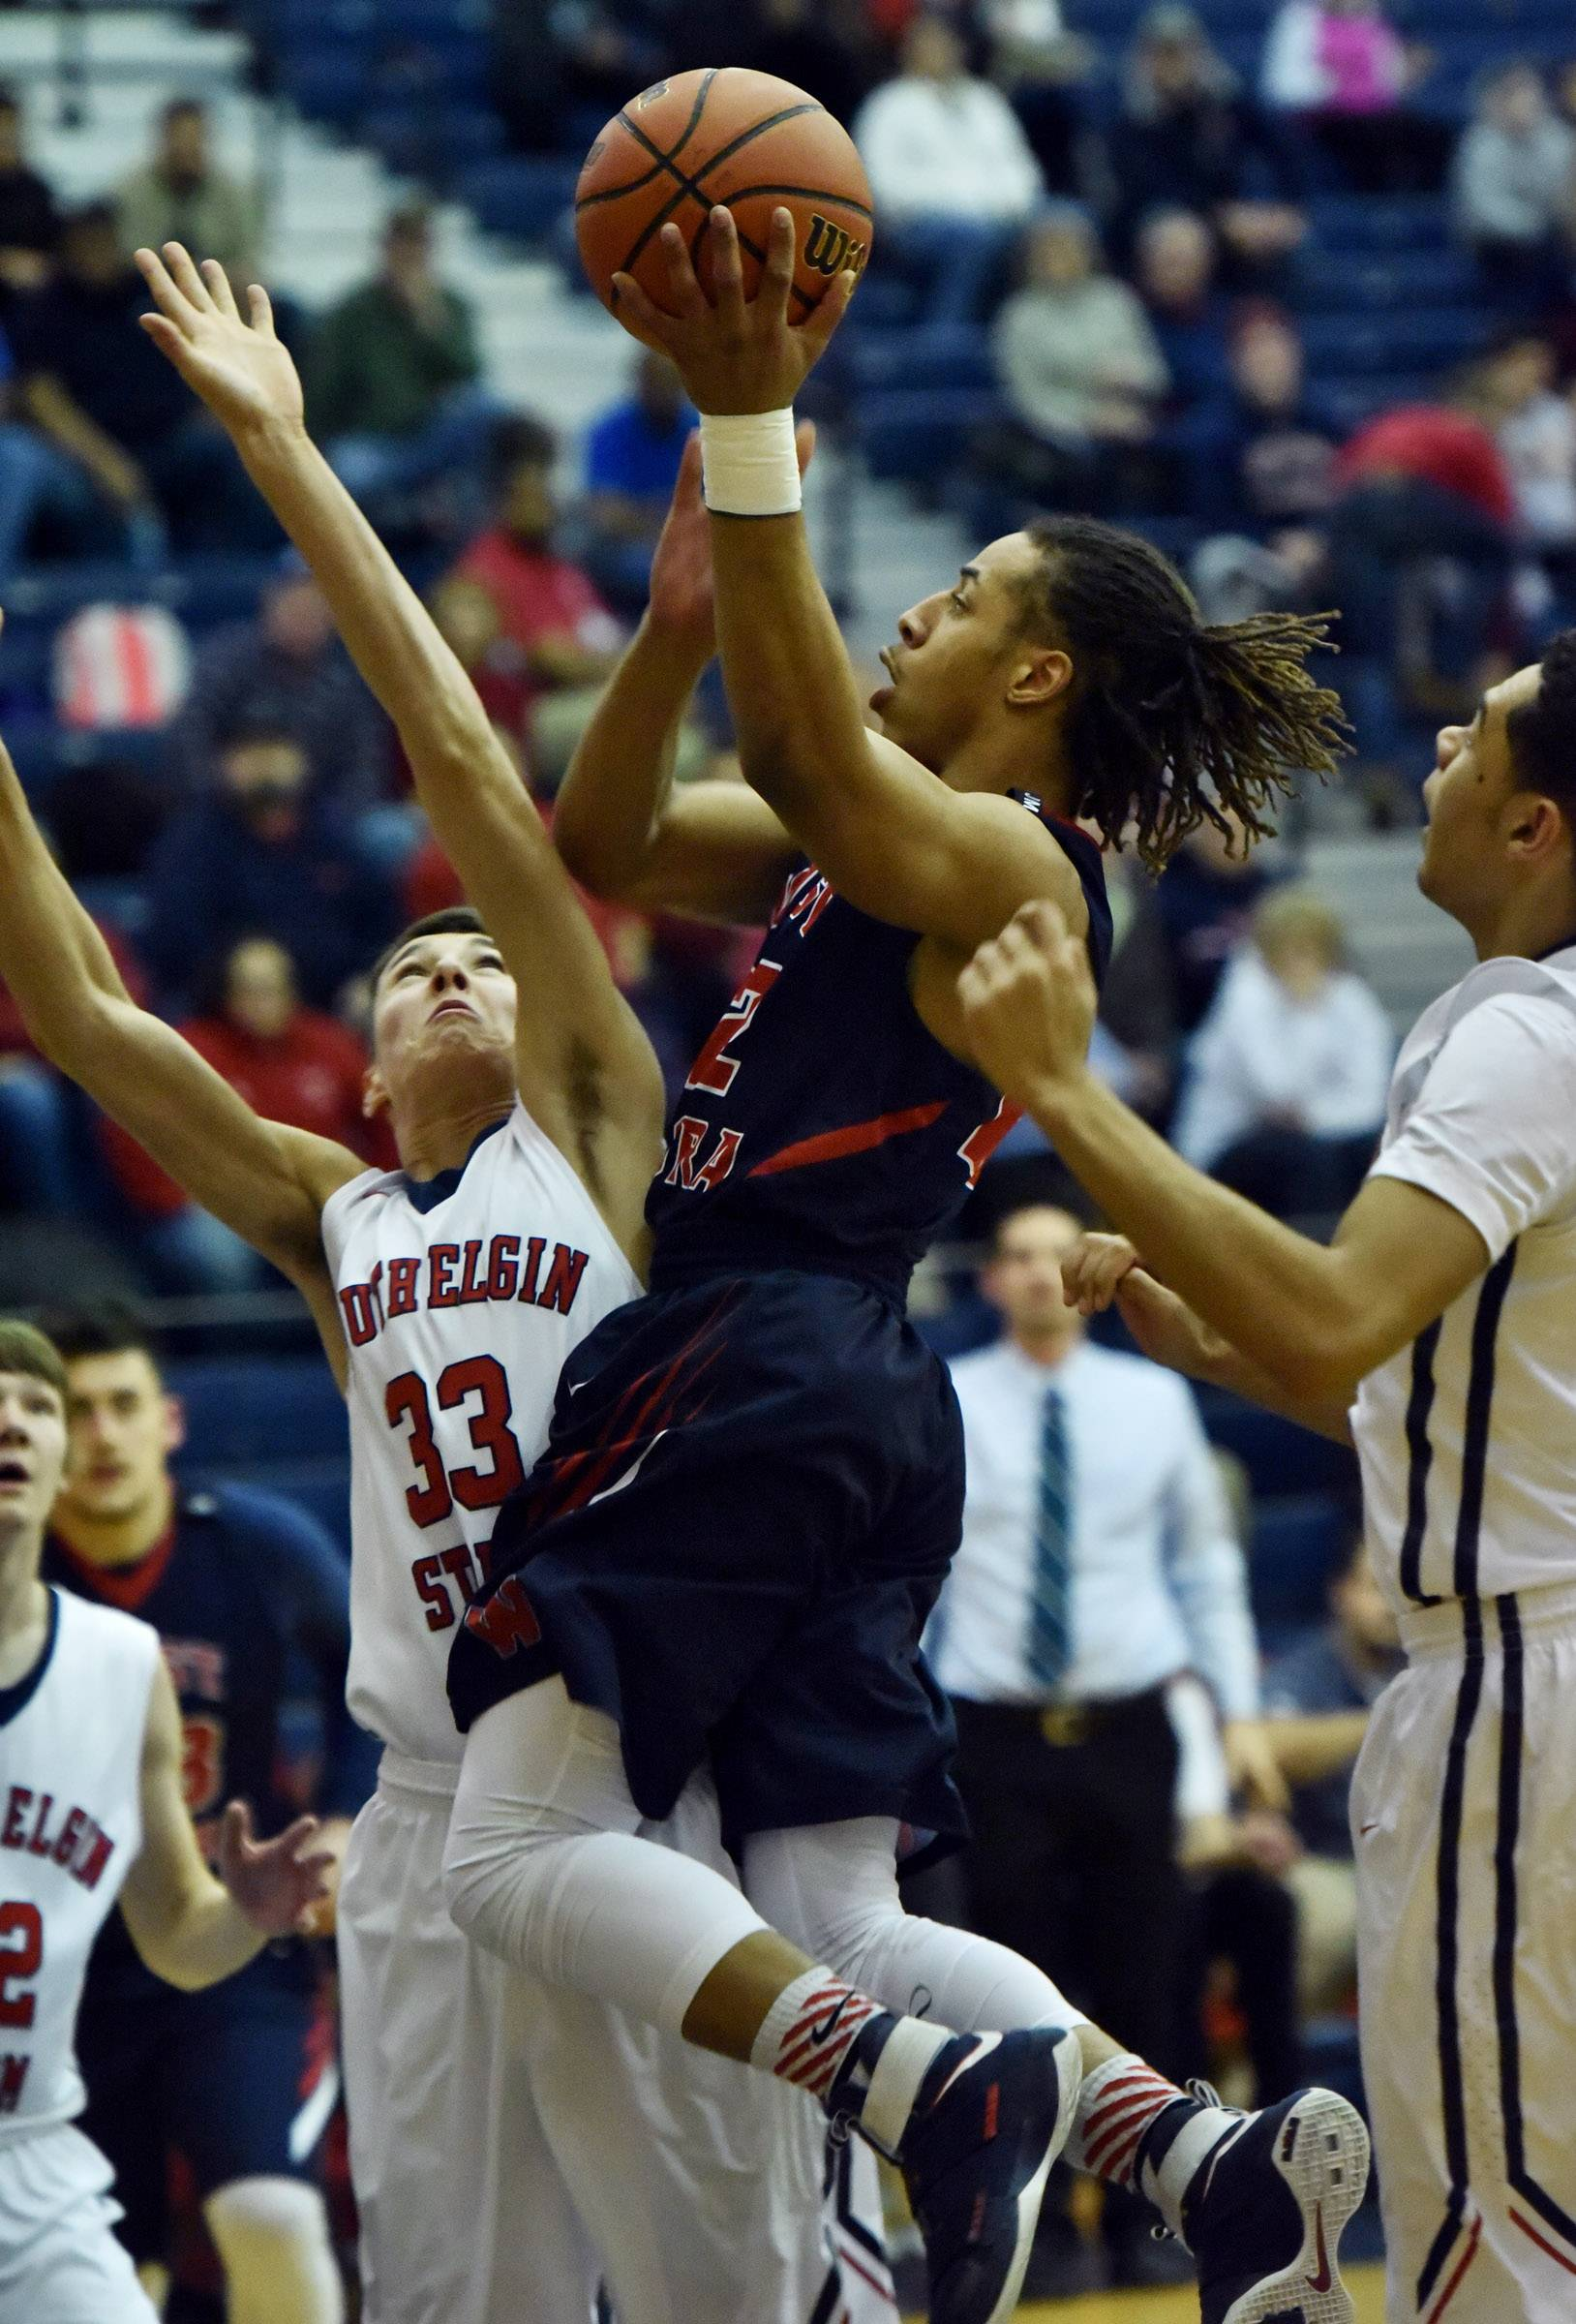 West Aurora's DaQuan Cross glides to the hoop against South Elgin's Vincent Miszkiewicz Friday in South Elgin.